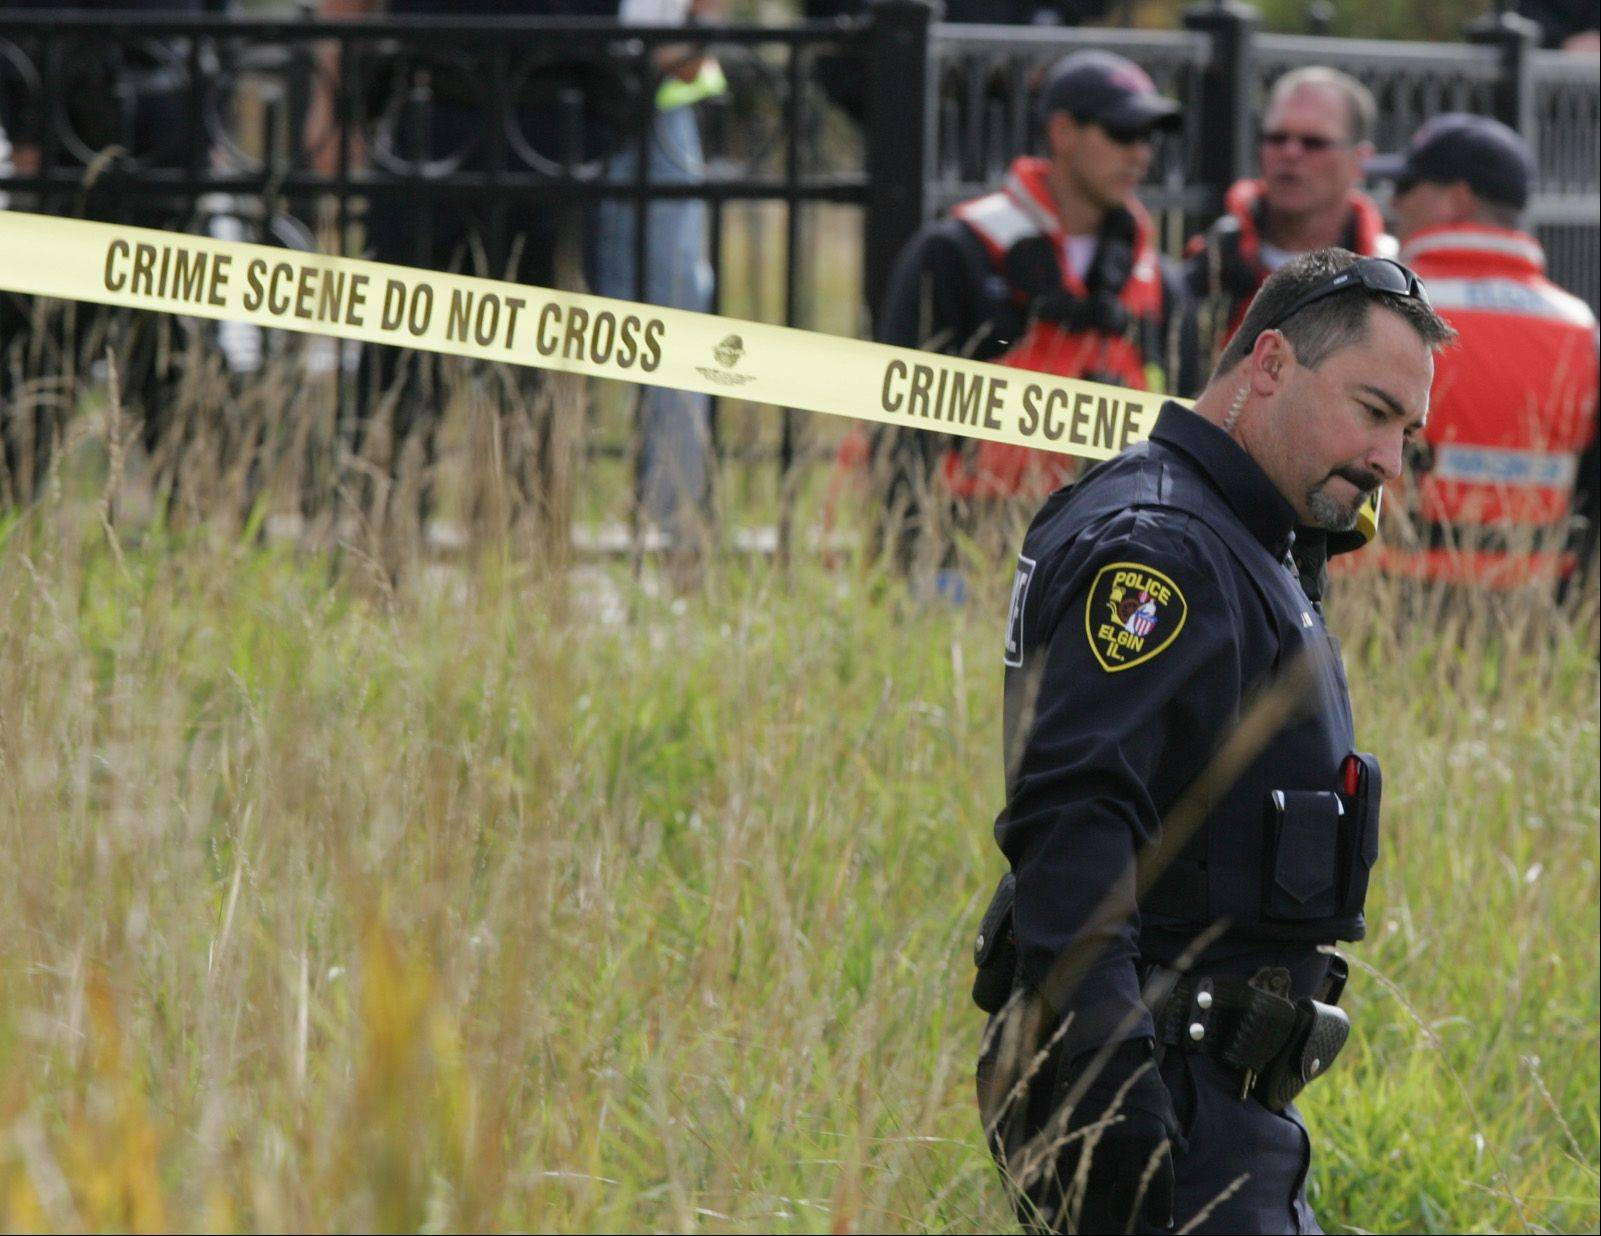 An Elgin police officer ropes off the area with crime scene tape as fire department personnel continue to attempt to find a body that a fisherman claimed to have found in the Fox River near Festival Park Tuesday morning.